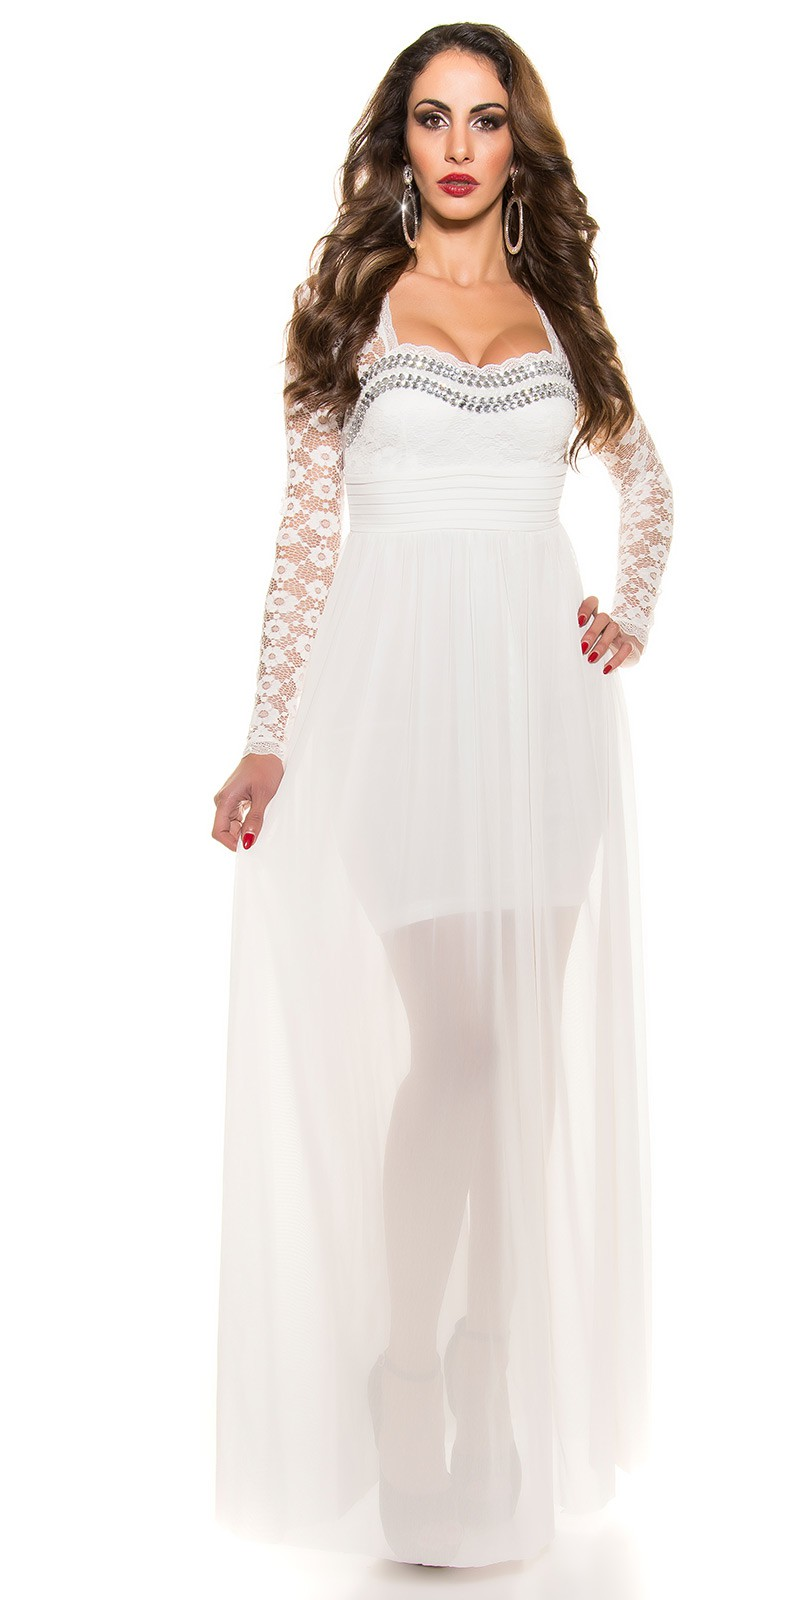 9087363b5bc6 ooKoucla evening dress with lace  Color WHITE Size S 0000K9141 WEISS 34 ·  Dlhe spolocenske saty s dlhym rukavom